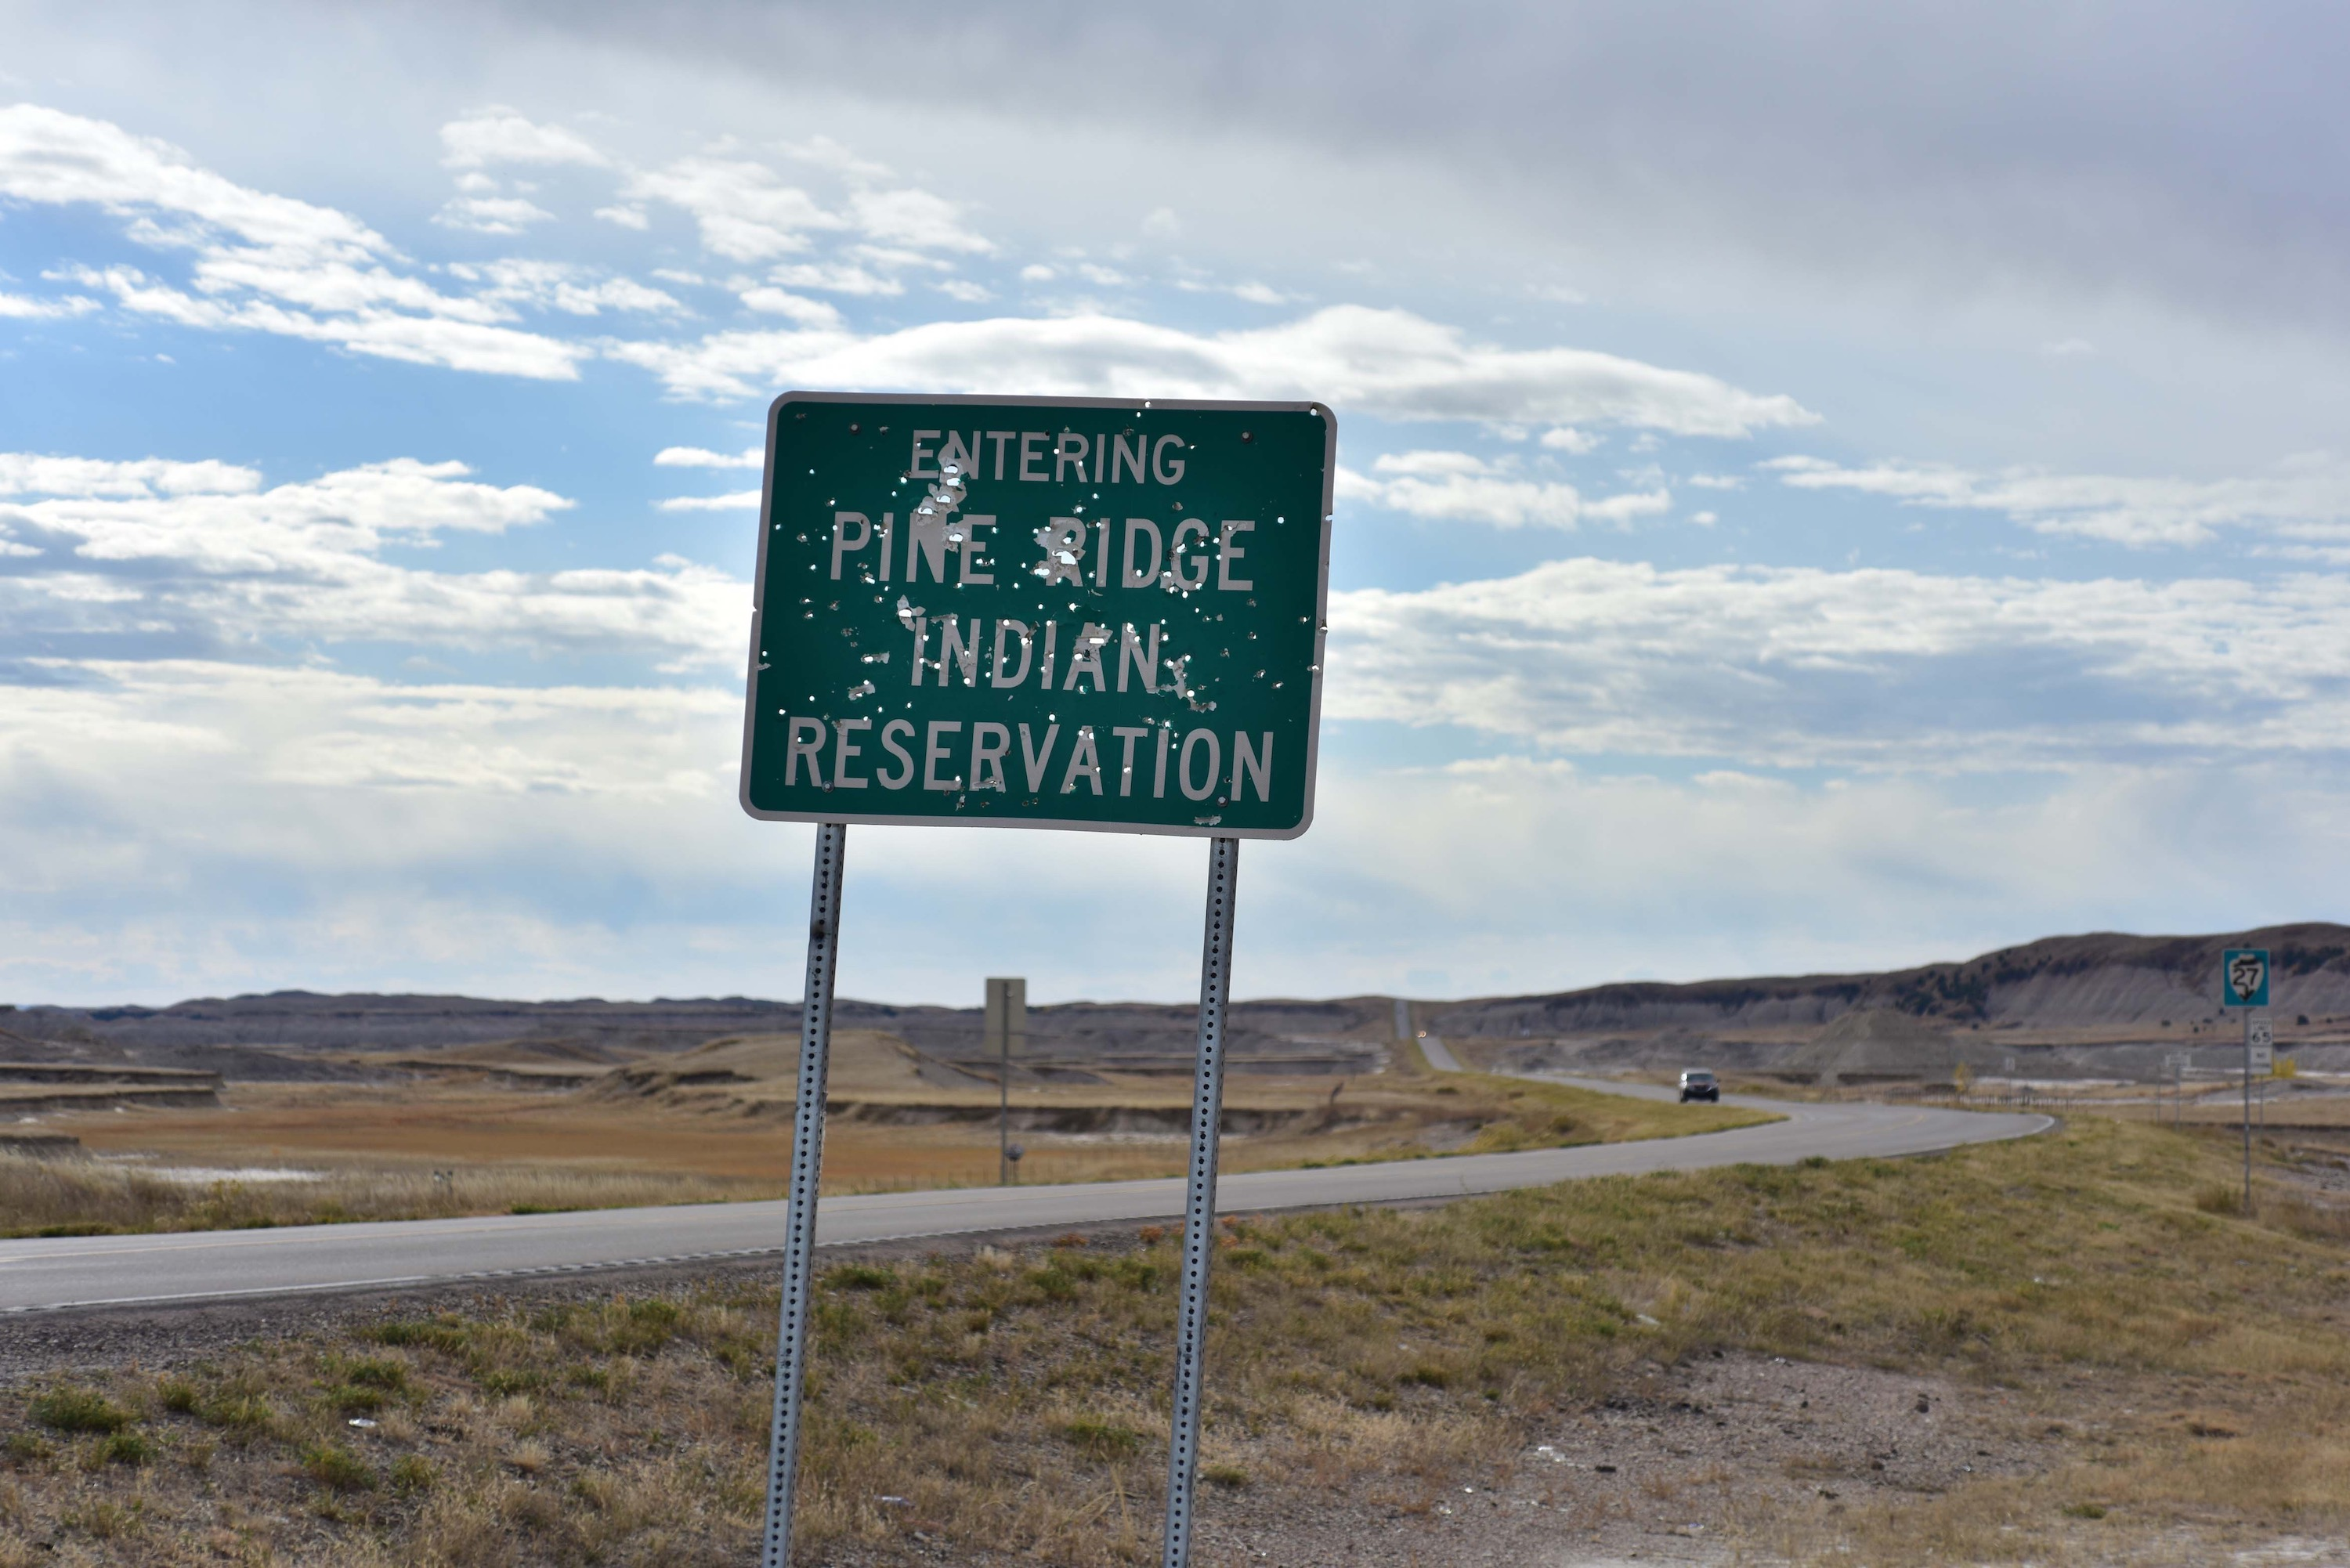 Ivan Star Comes Out: A glimpse of life on the Pine Ridge Reservation